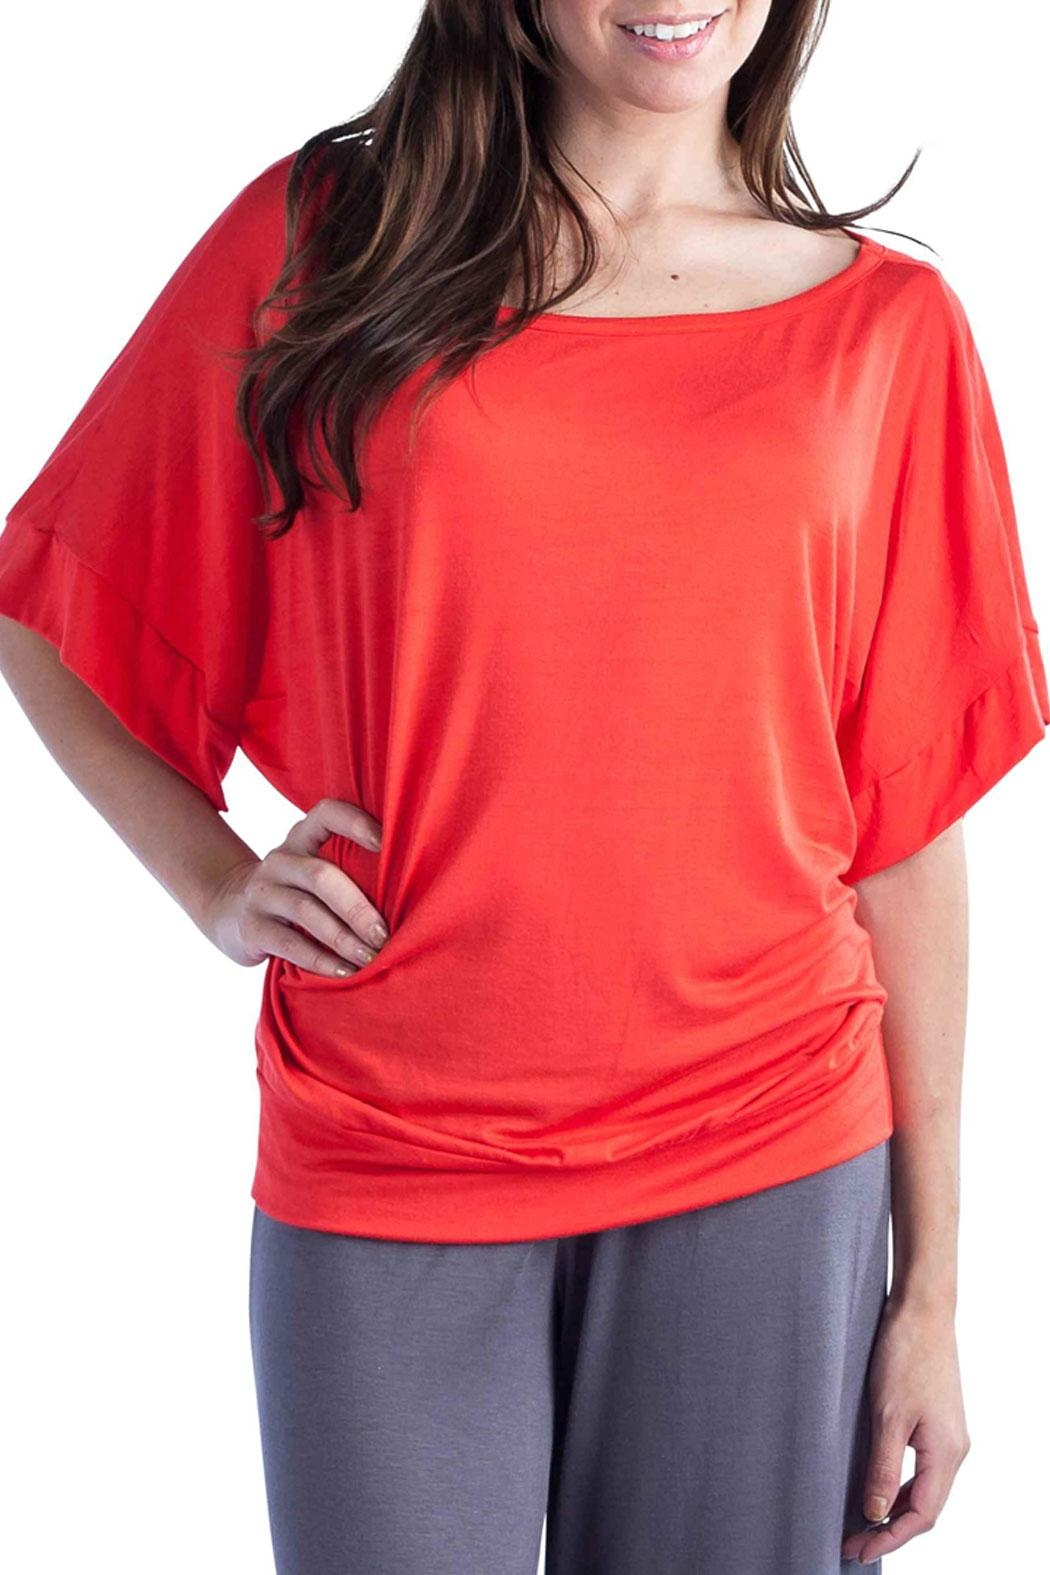 24/7 Comfort Apparel Banded Dolman Top - Main Image